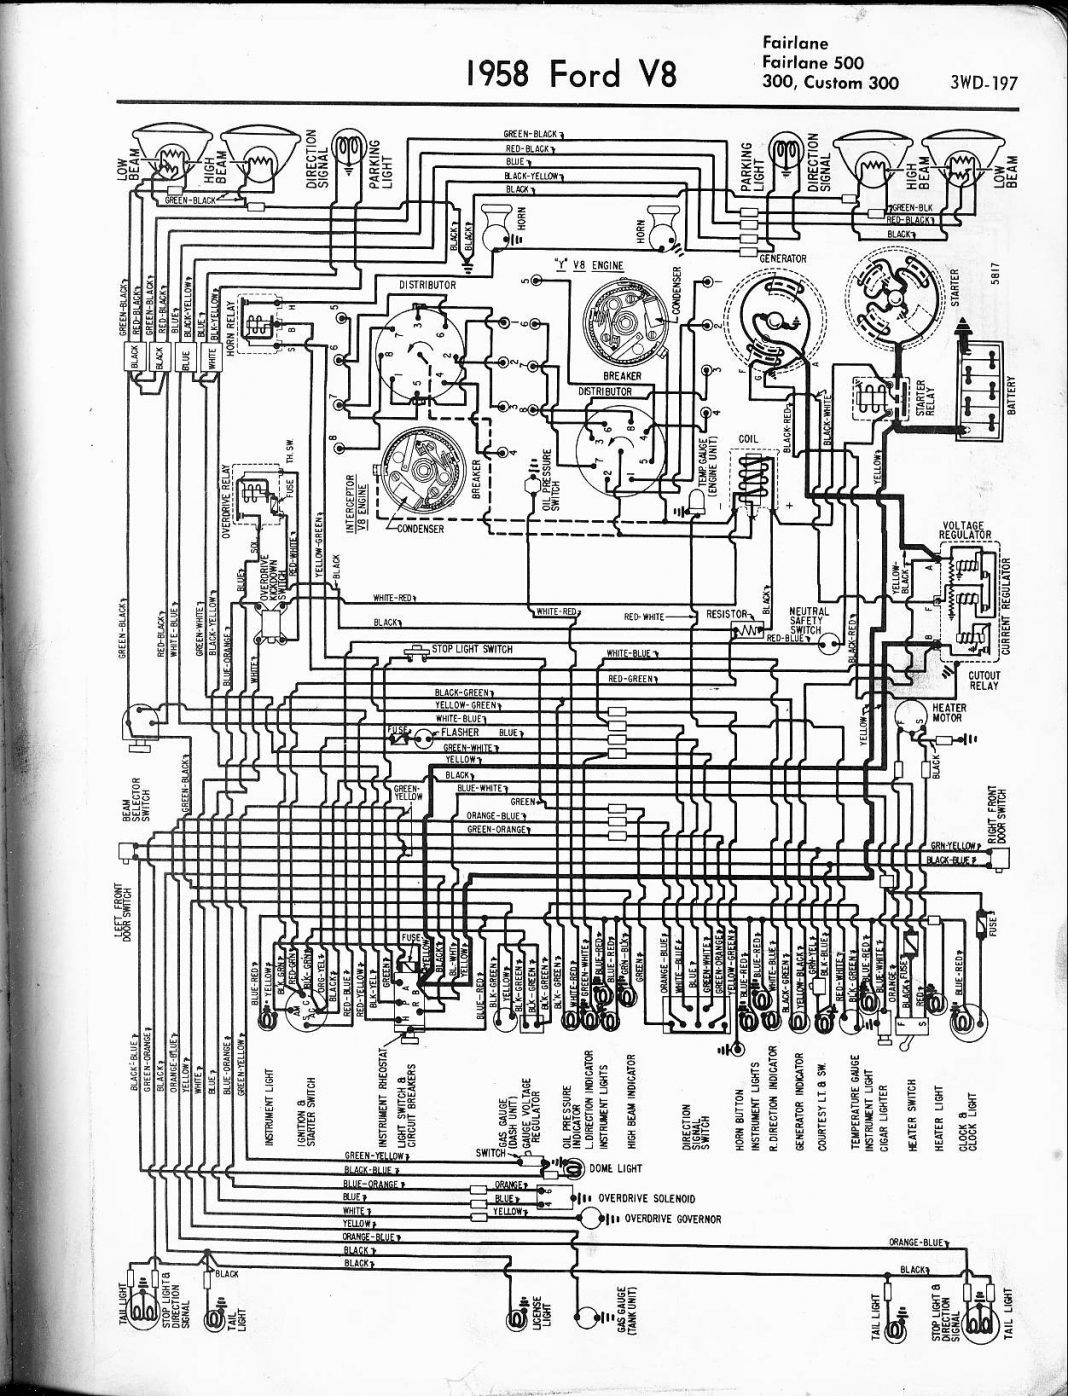 21 Best Sample Of Ford Wiring Diagrams Samples